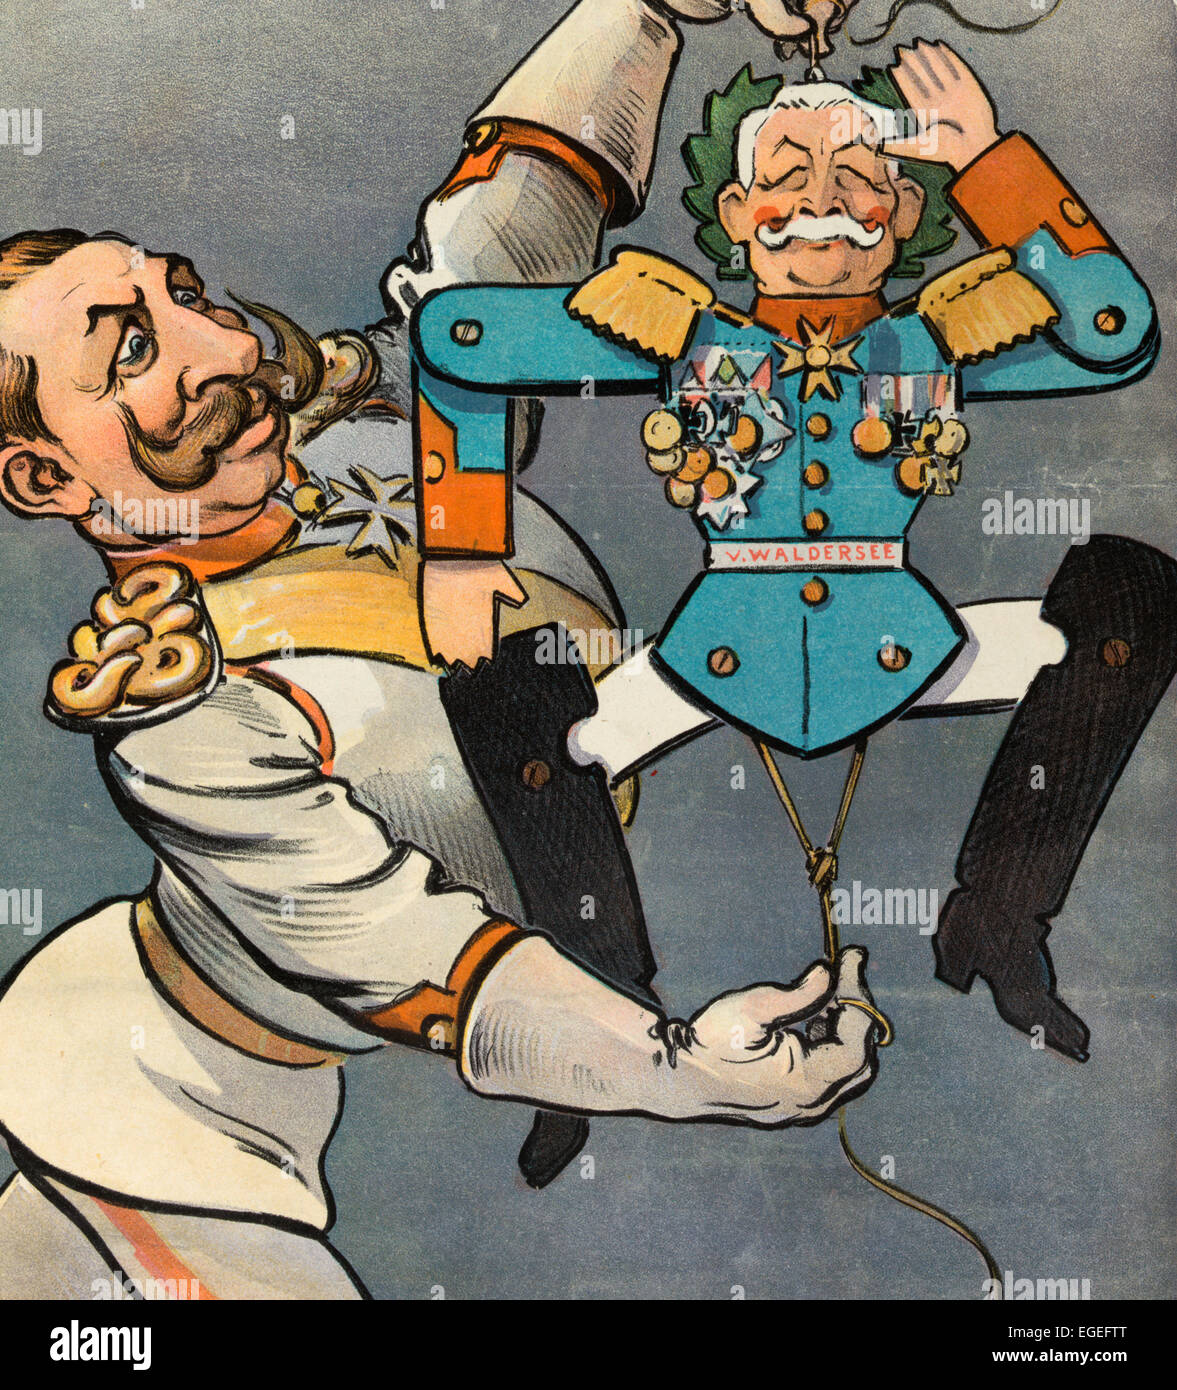 His First War Hero - Illustration shows the German Emperor Wilhelm II holding the strings to a wooden jumping toy - Stock Image